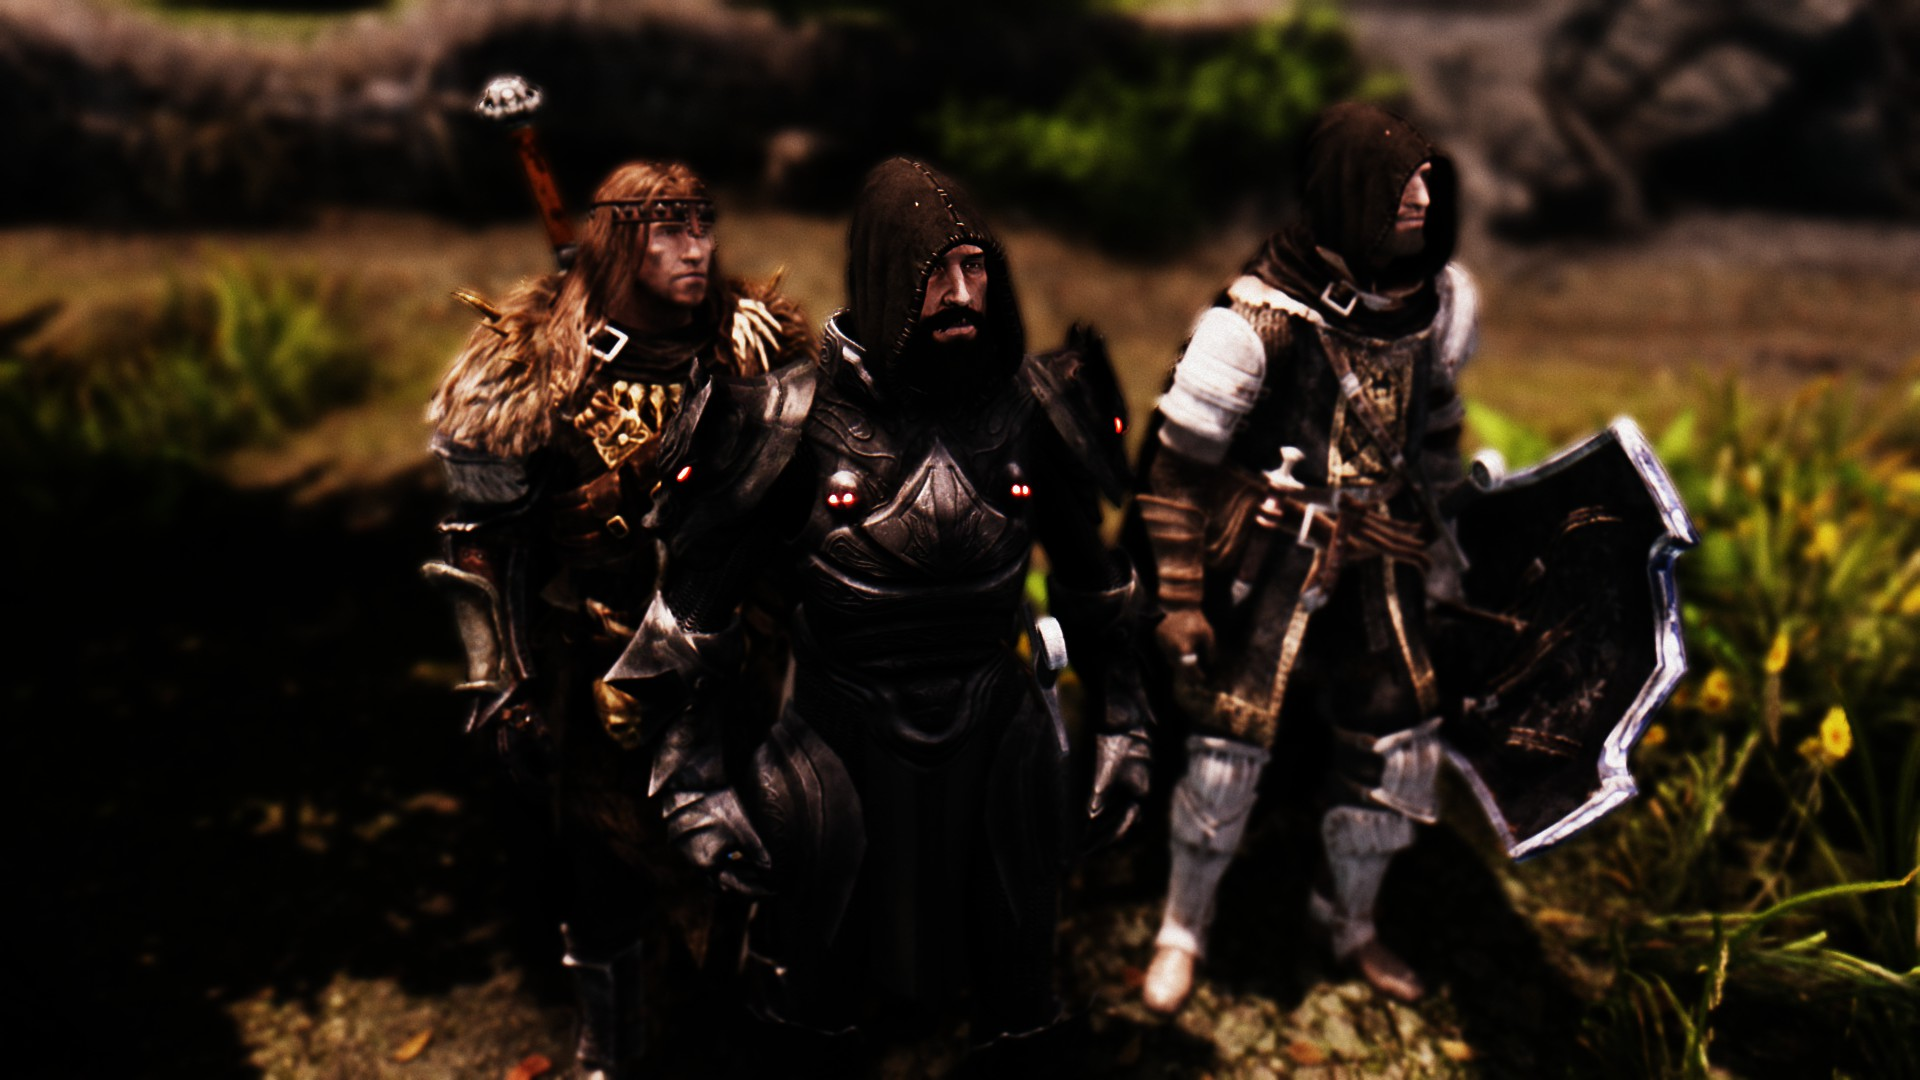 Band of Warriors